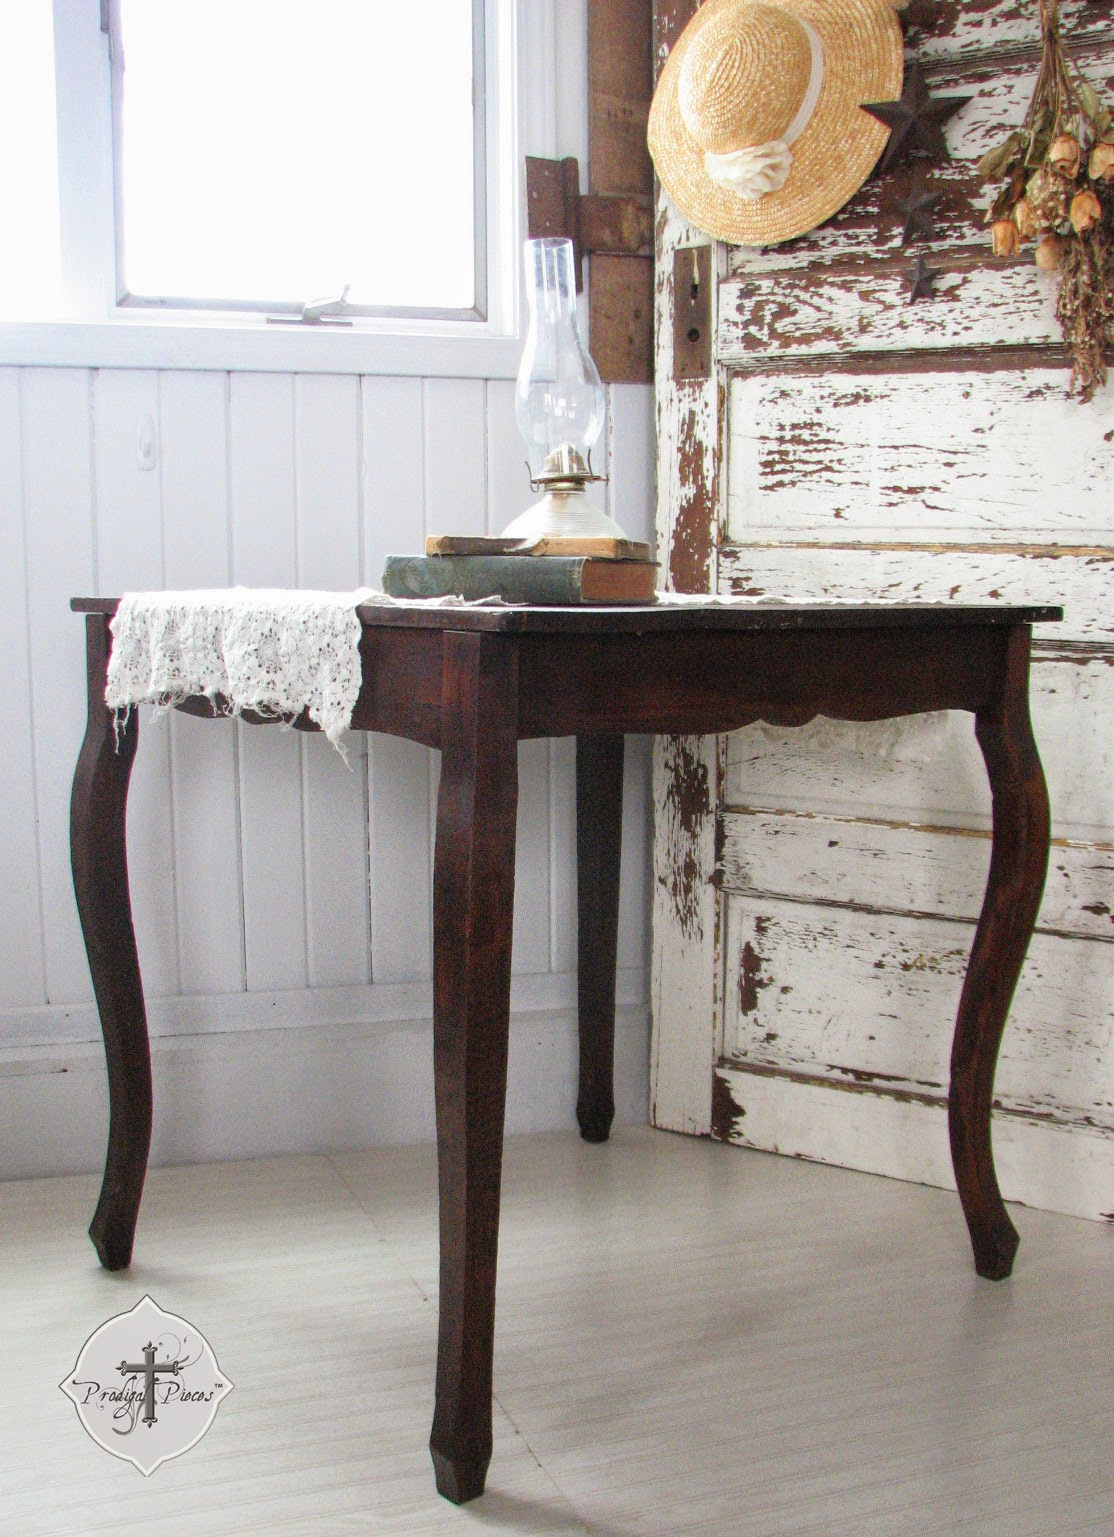 Rustic Farmhouse Table with Tongue & Groove Plank Top via http://www.prodigalpieces.com